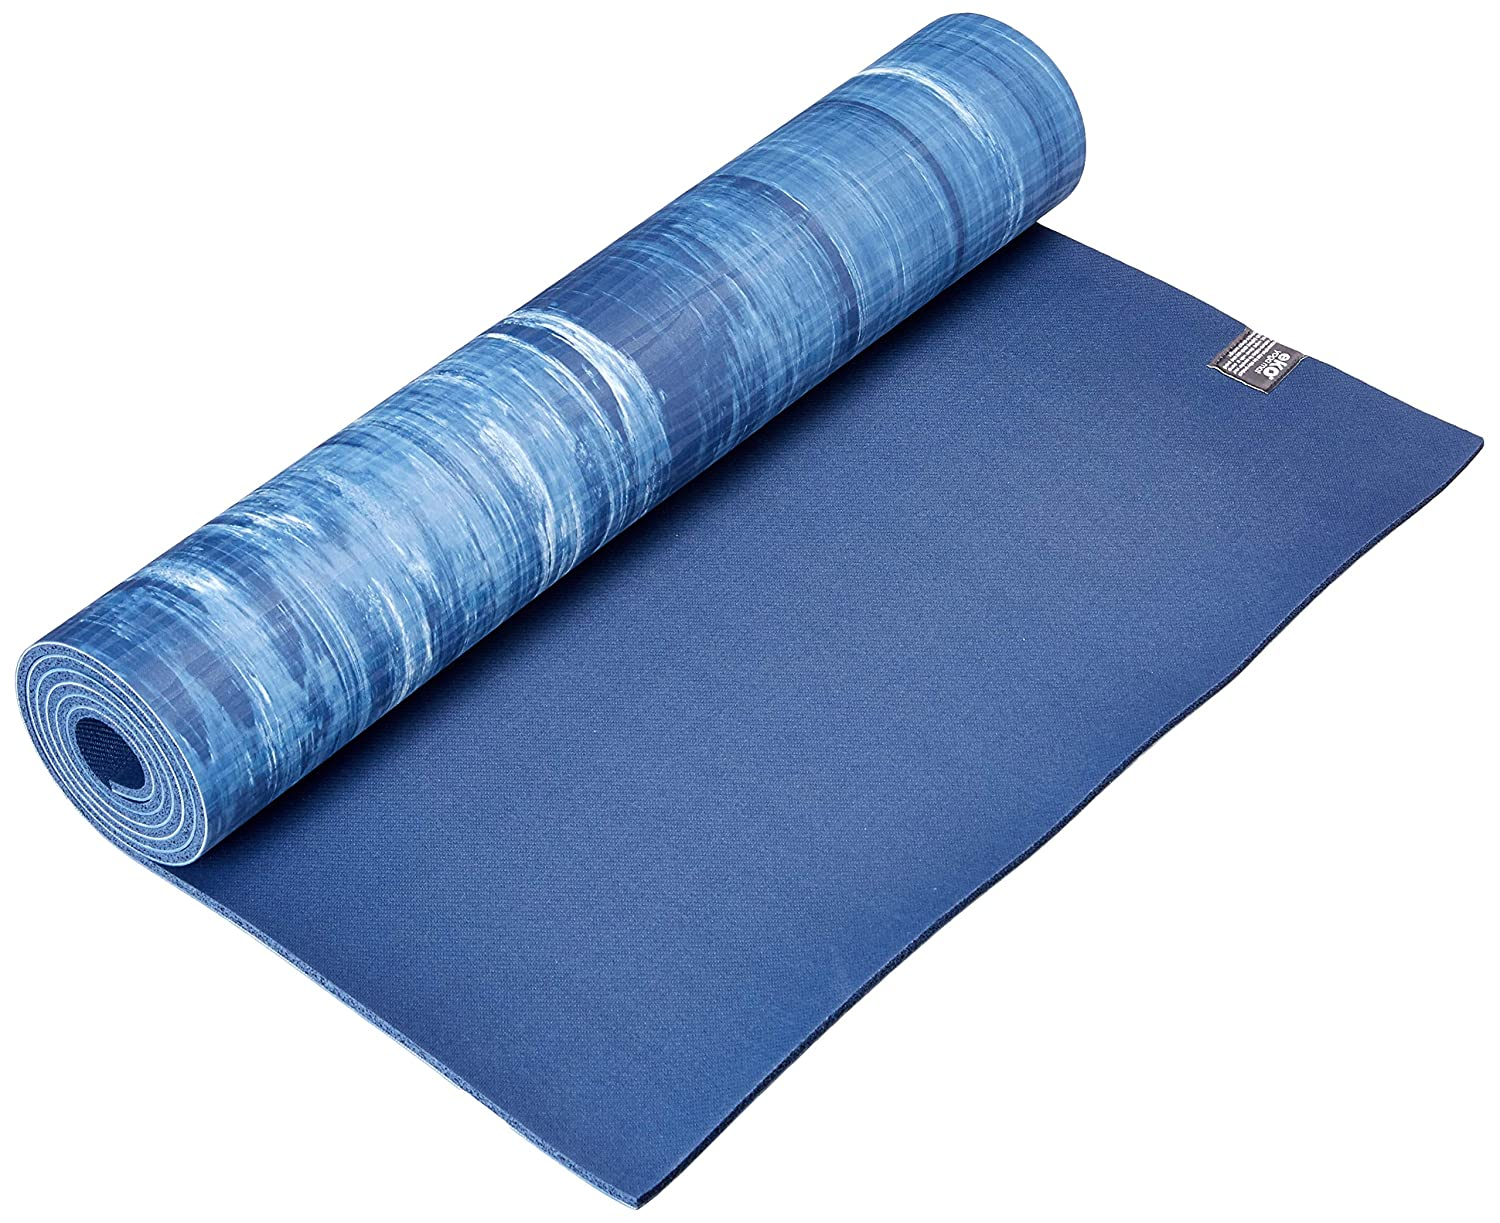 Manduka eKOLite 4 mm-68-rain Check EKO Lite Yoga & Pilates ...